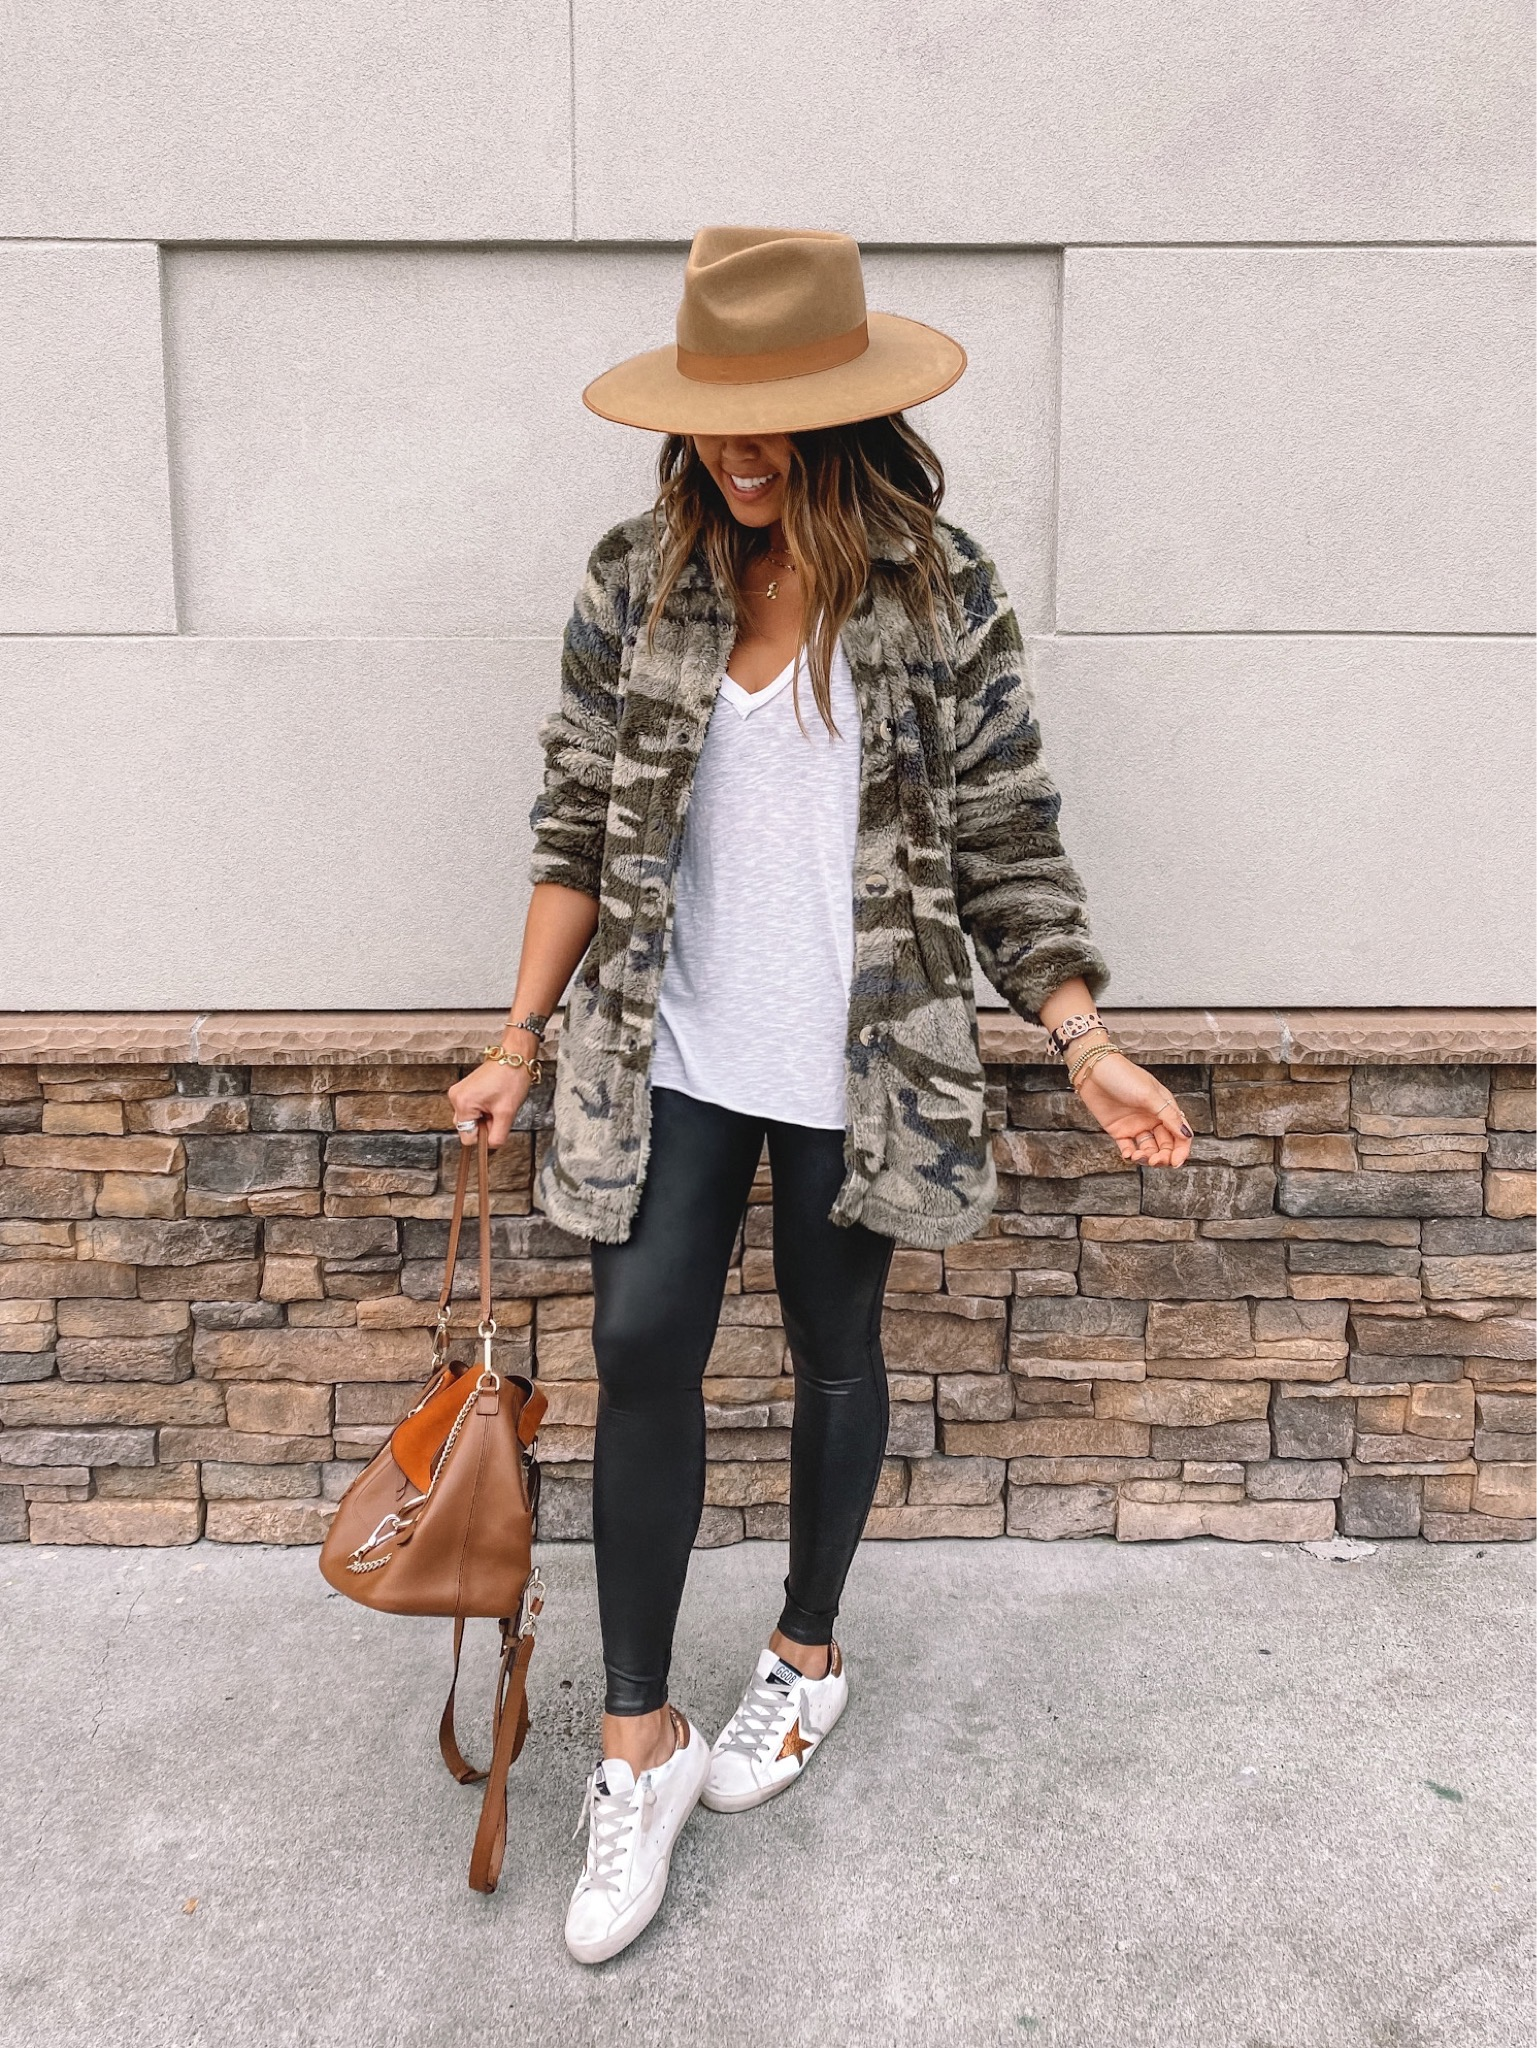 20 Cute Transitional Fall Outfits To Copy Right Now   Gypsy Tan